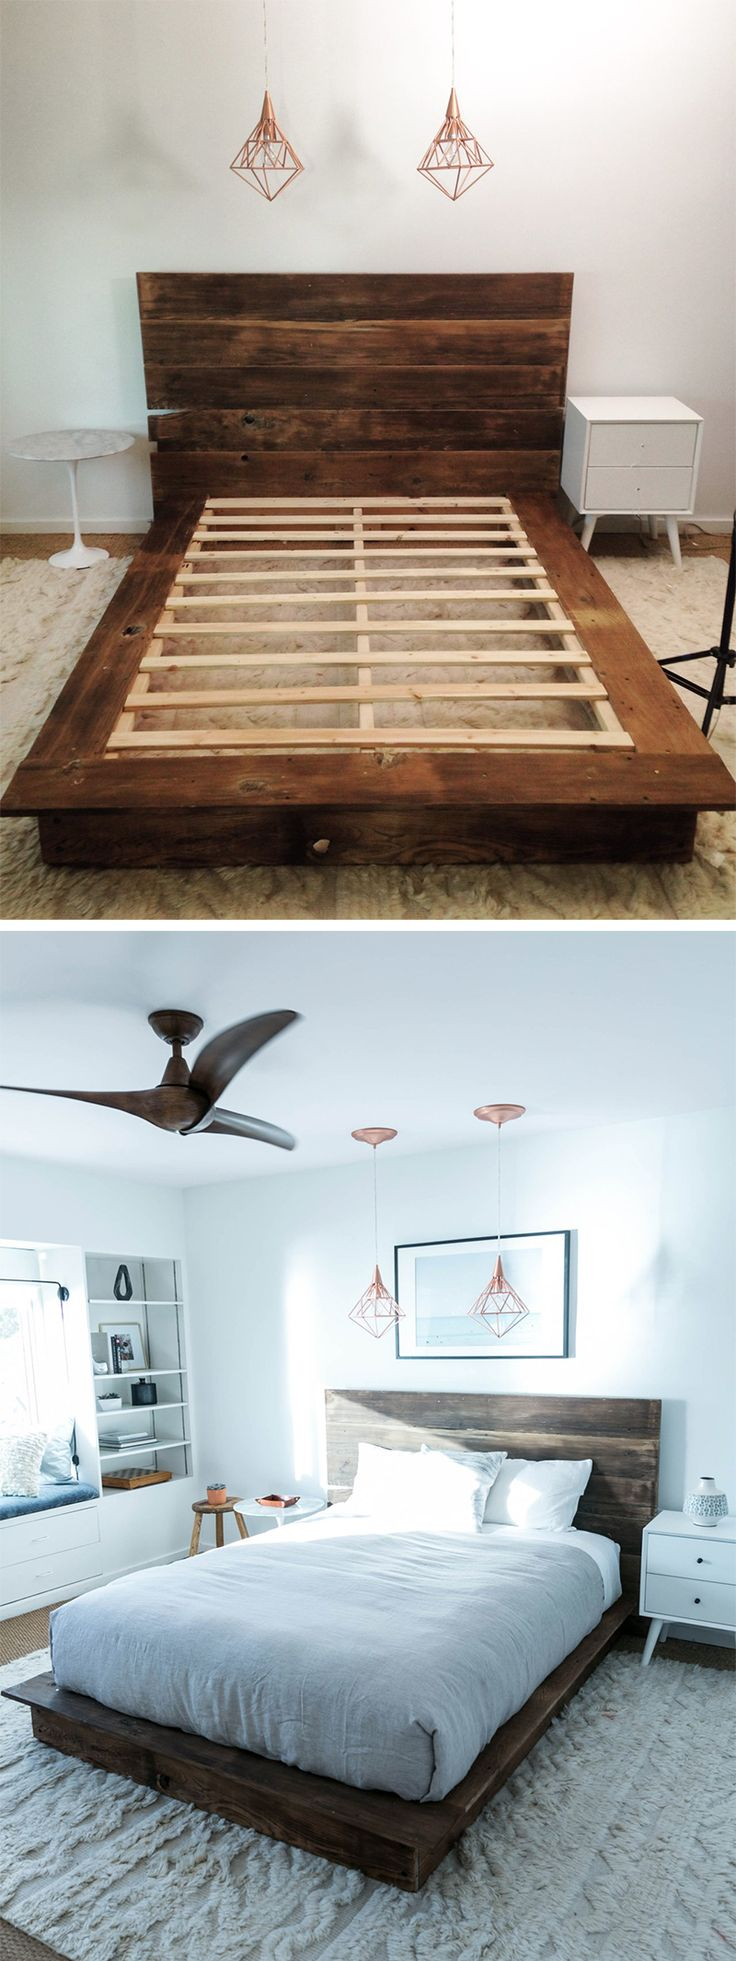 Wooden bed frame ideas - Diy Reclaimed Wood Platform Bed